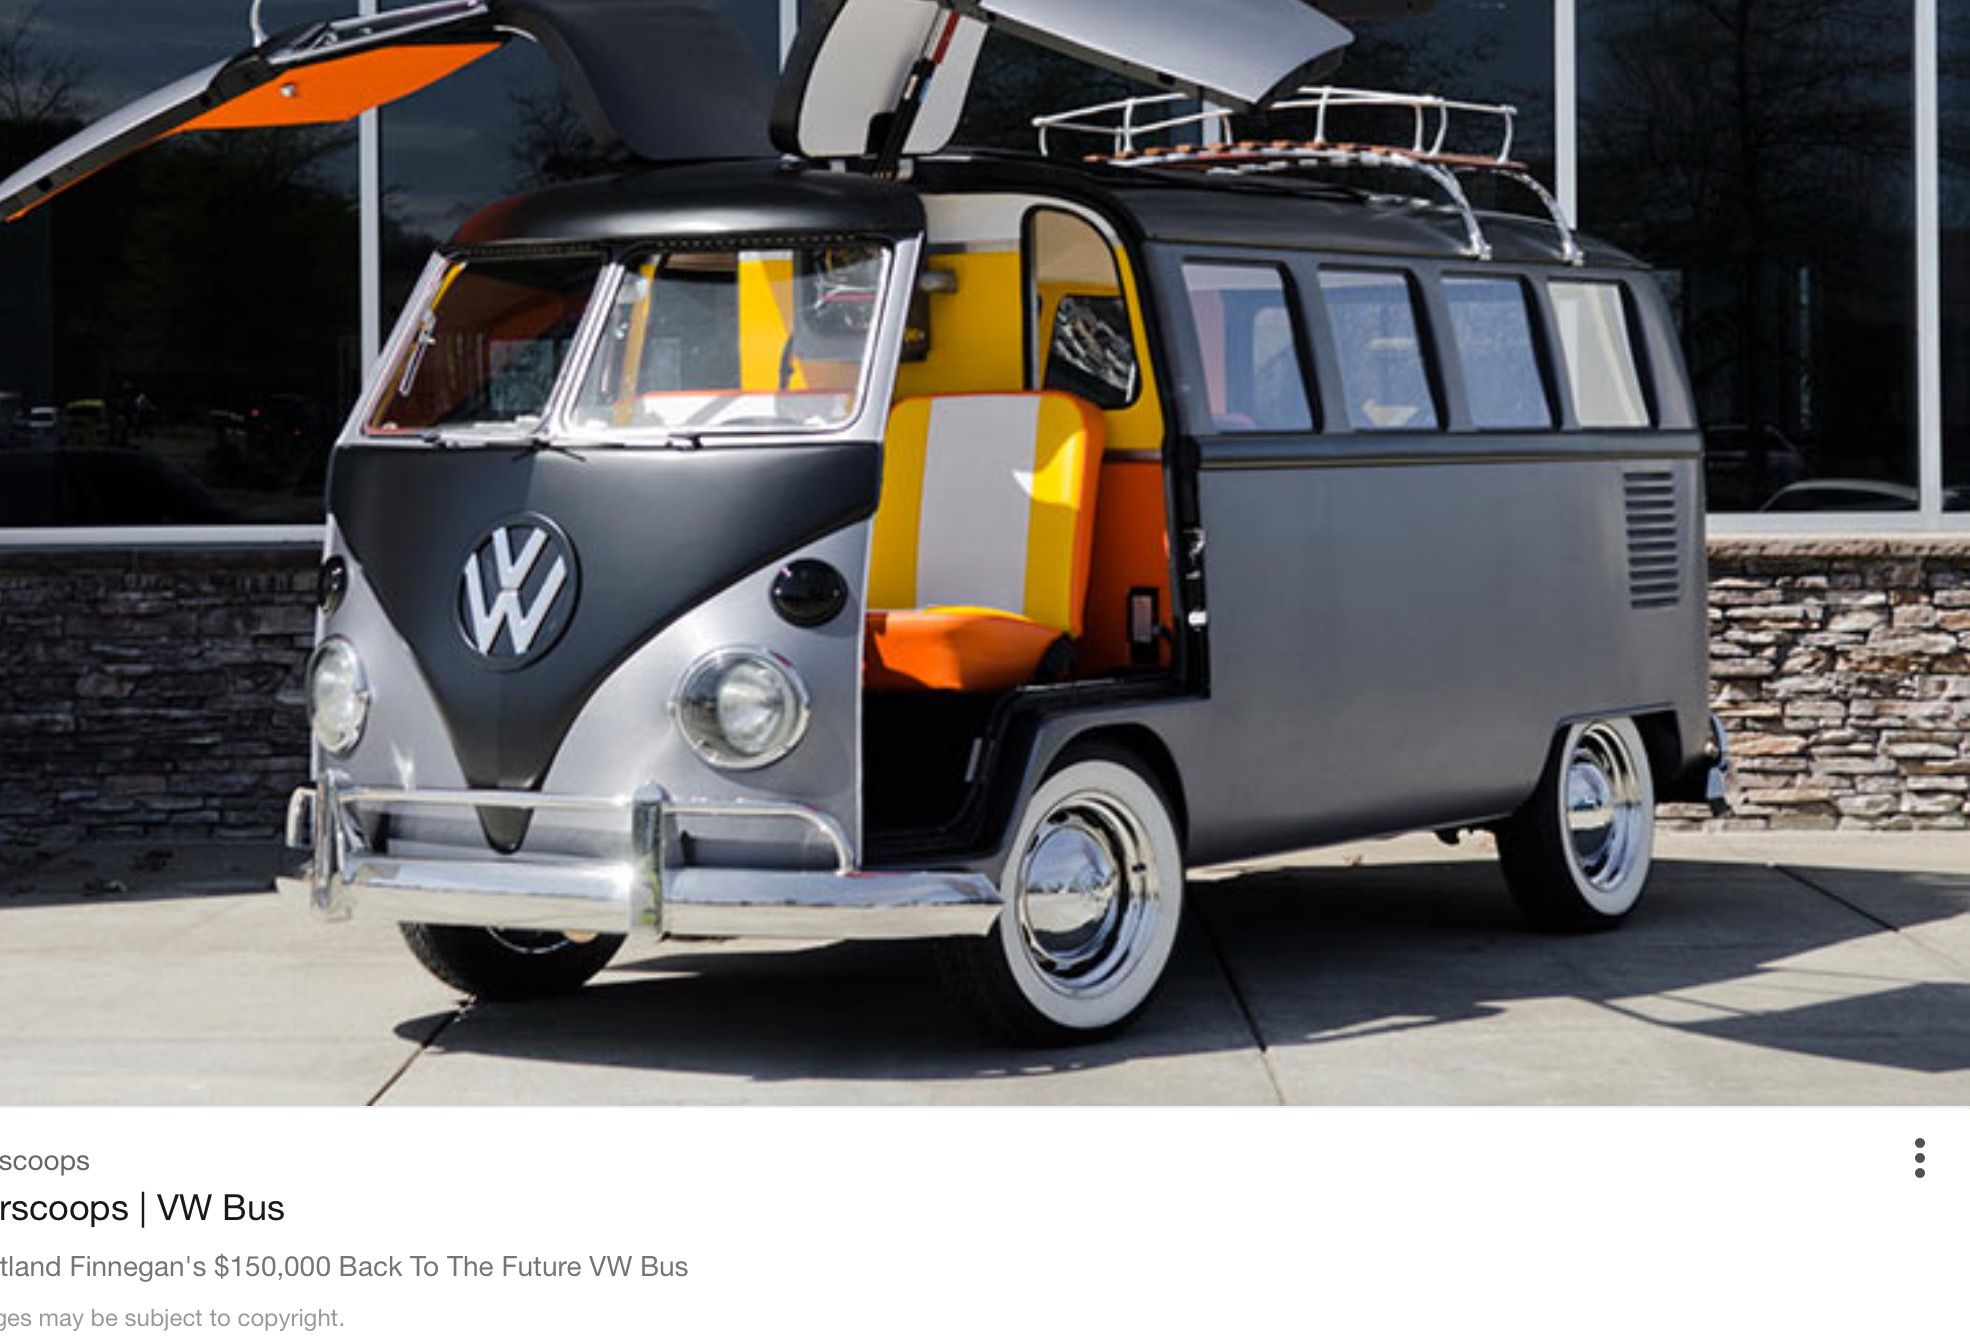 and was color we pin interior camperbus on our for working original bus new the this jumping vw started bay scheme camper ve taos point volkswagen pinterest off i a